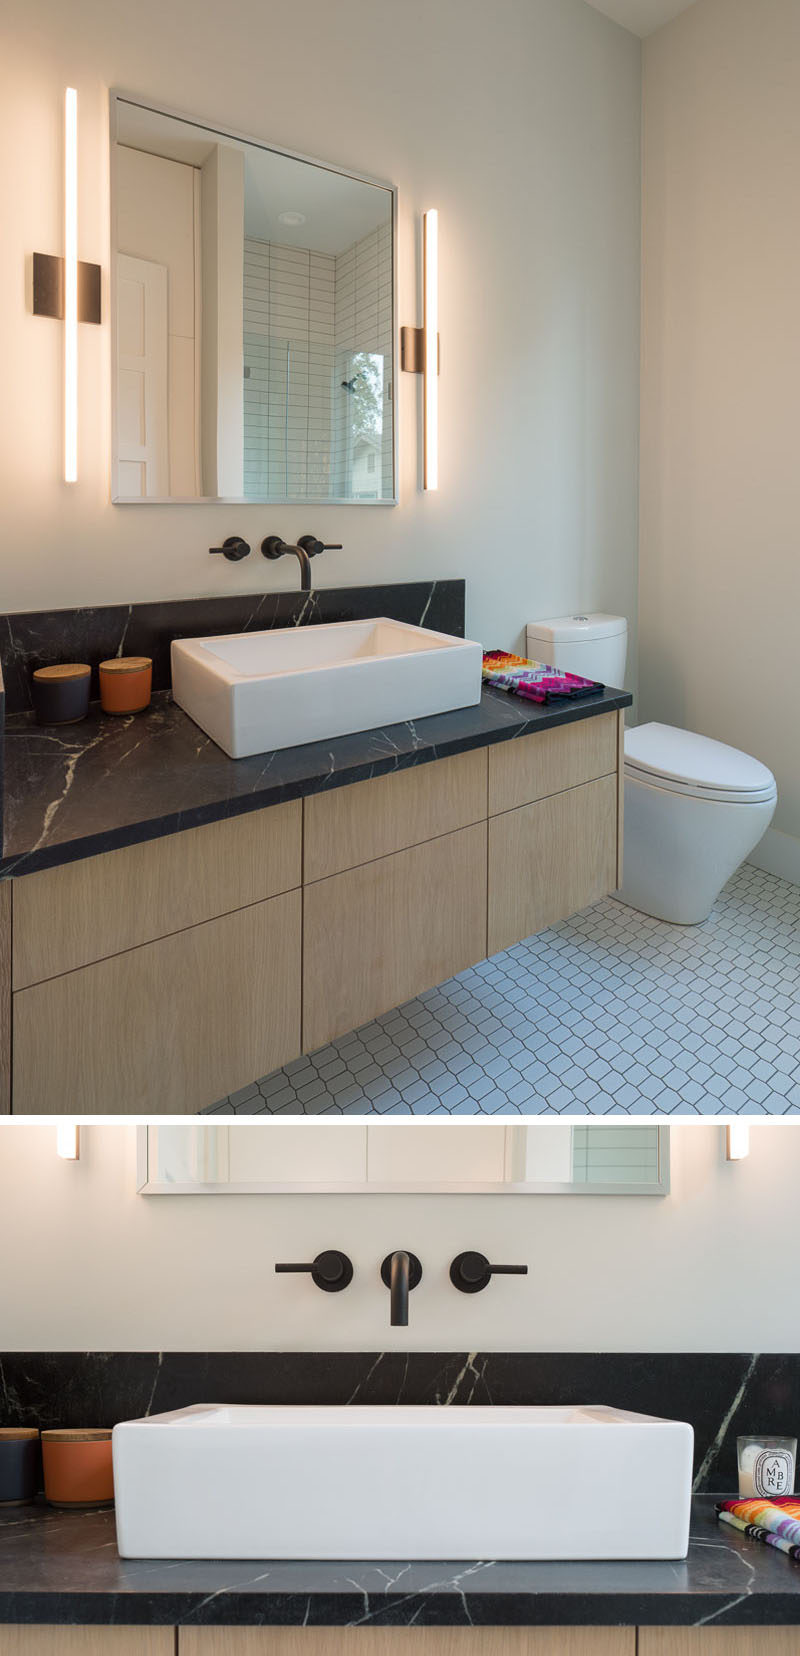 This modern bathroom features a floating vanity with a black countertop and sconces that flank the mirror.